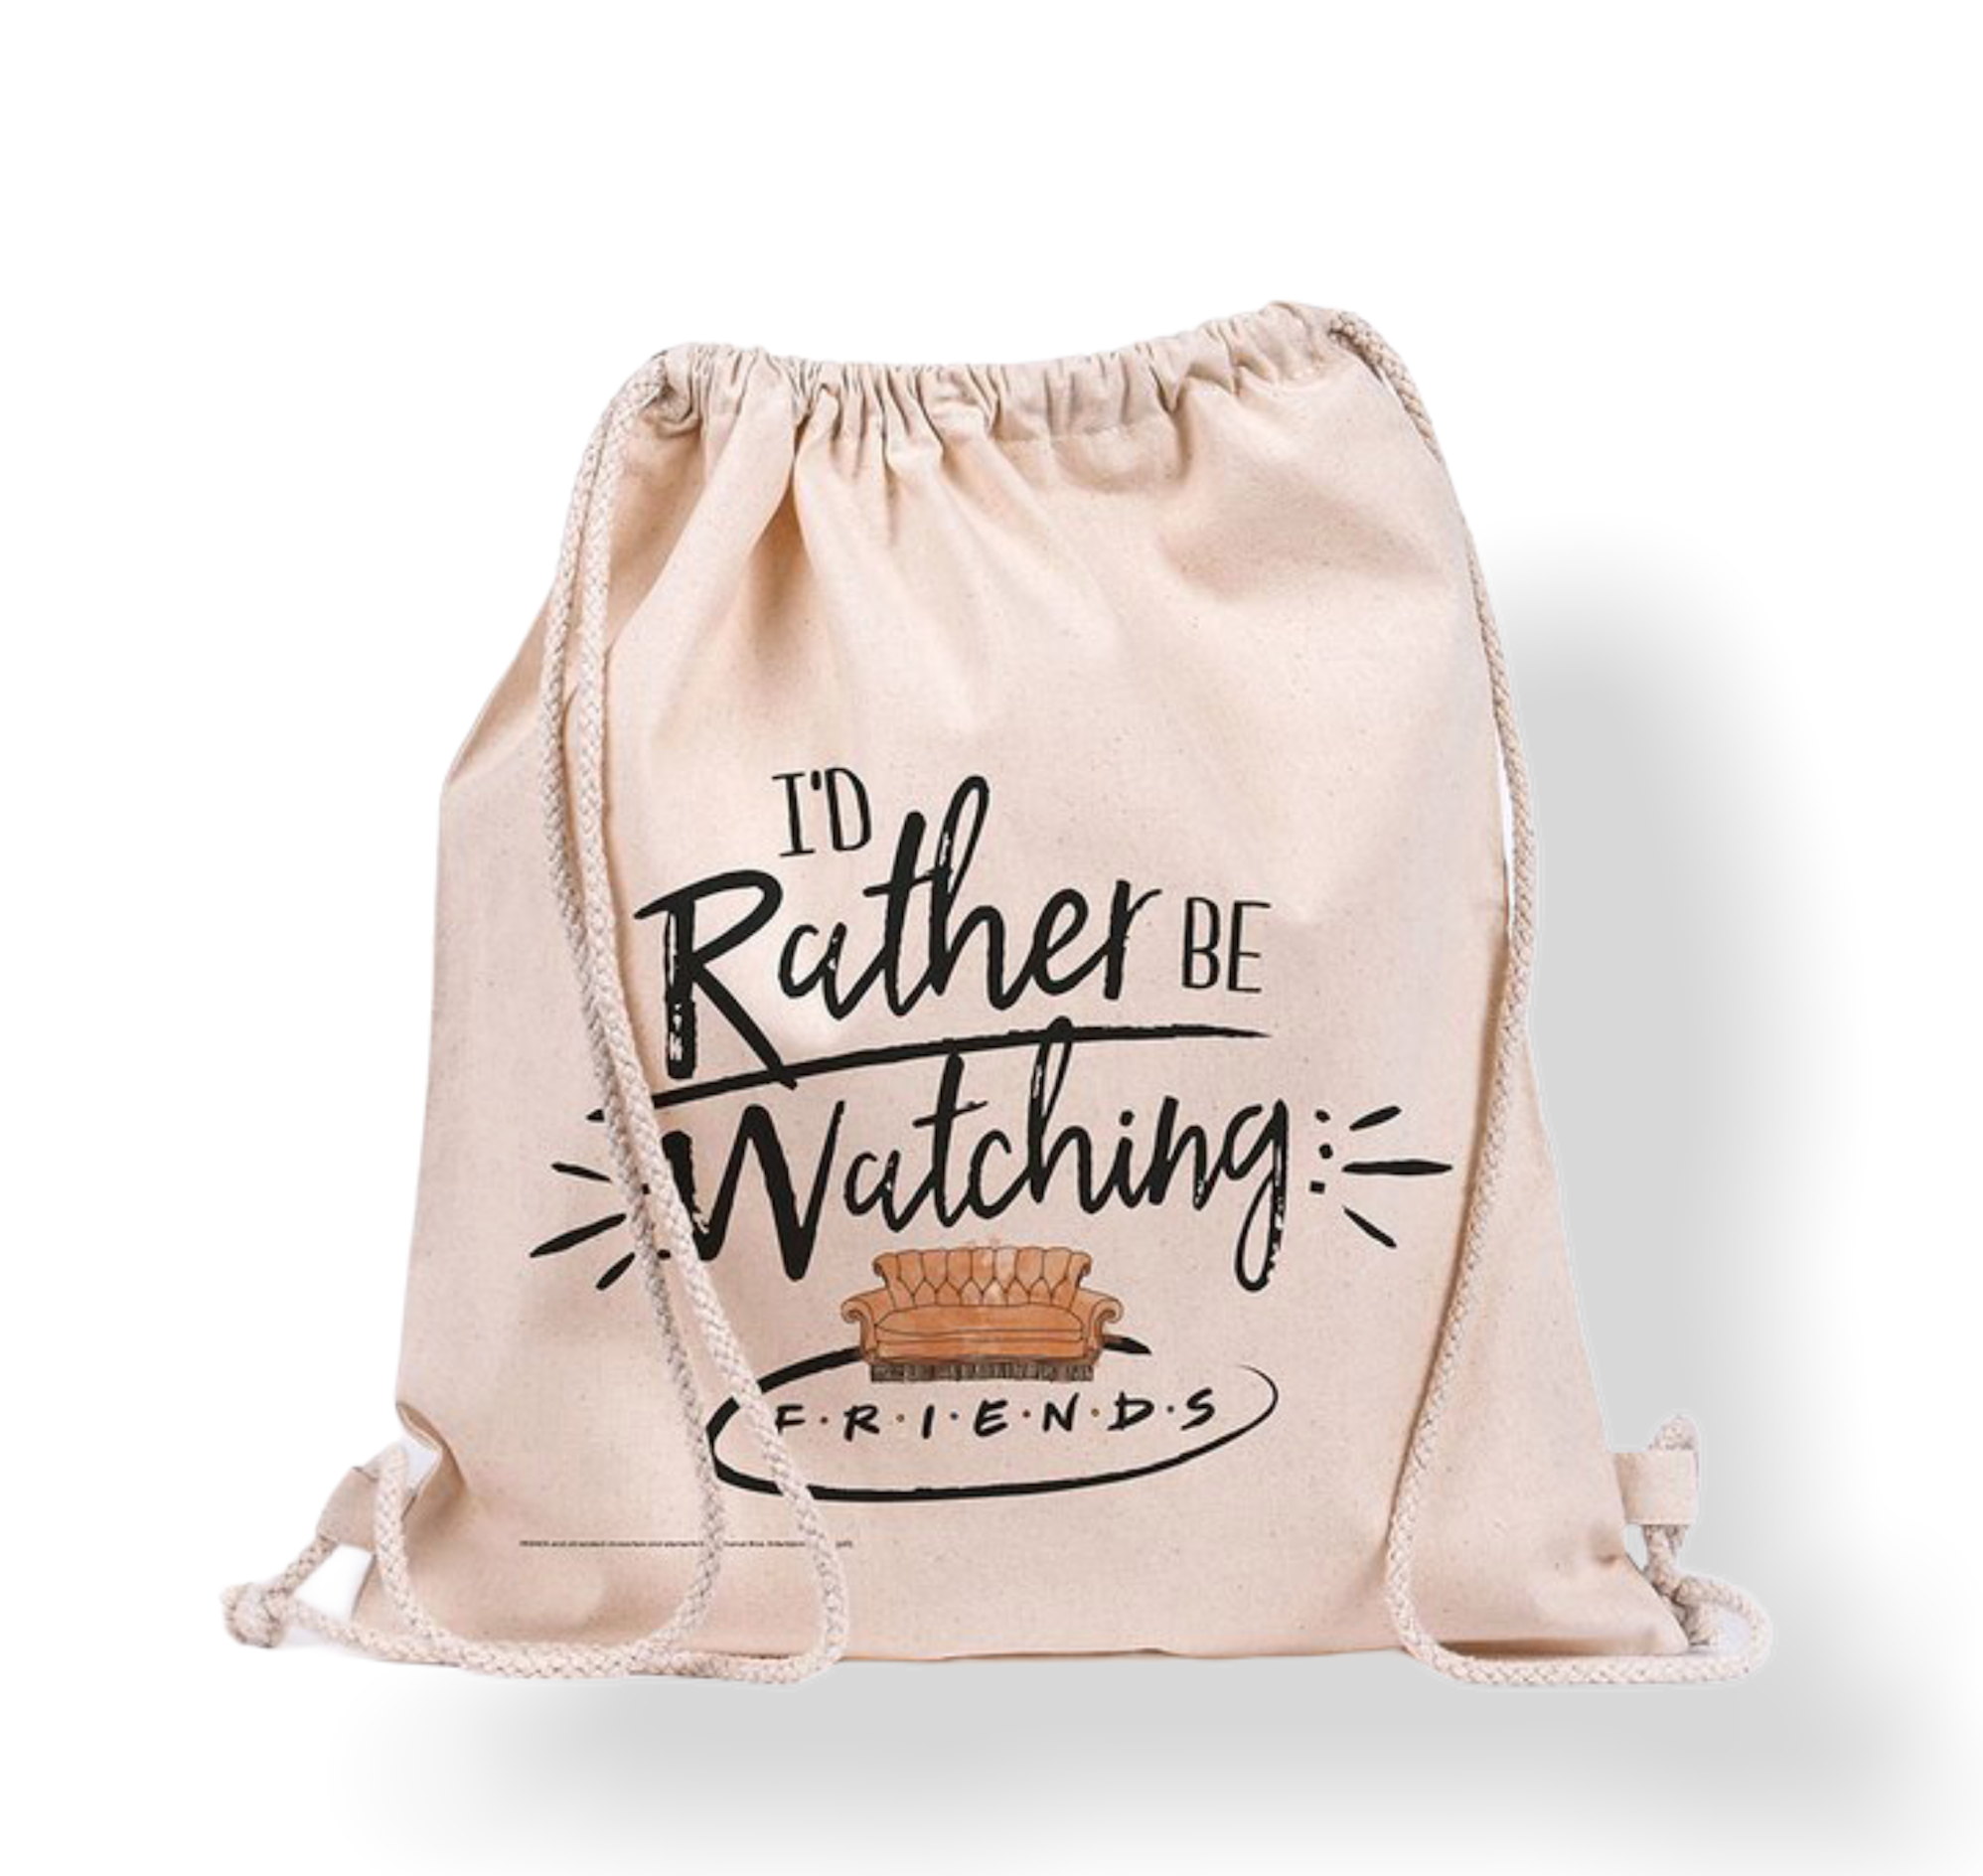 Friends - Rather Be Watching : Sac en toile logo